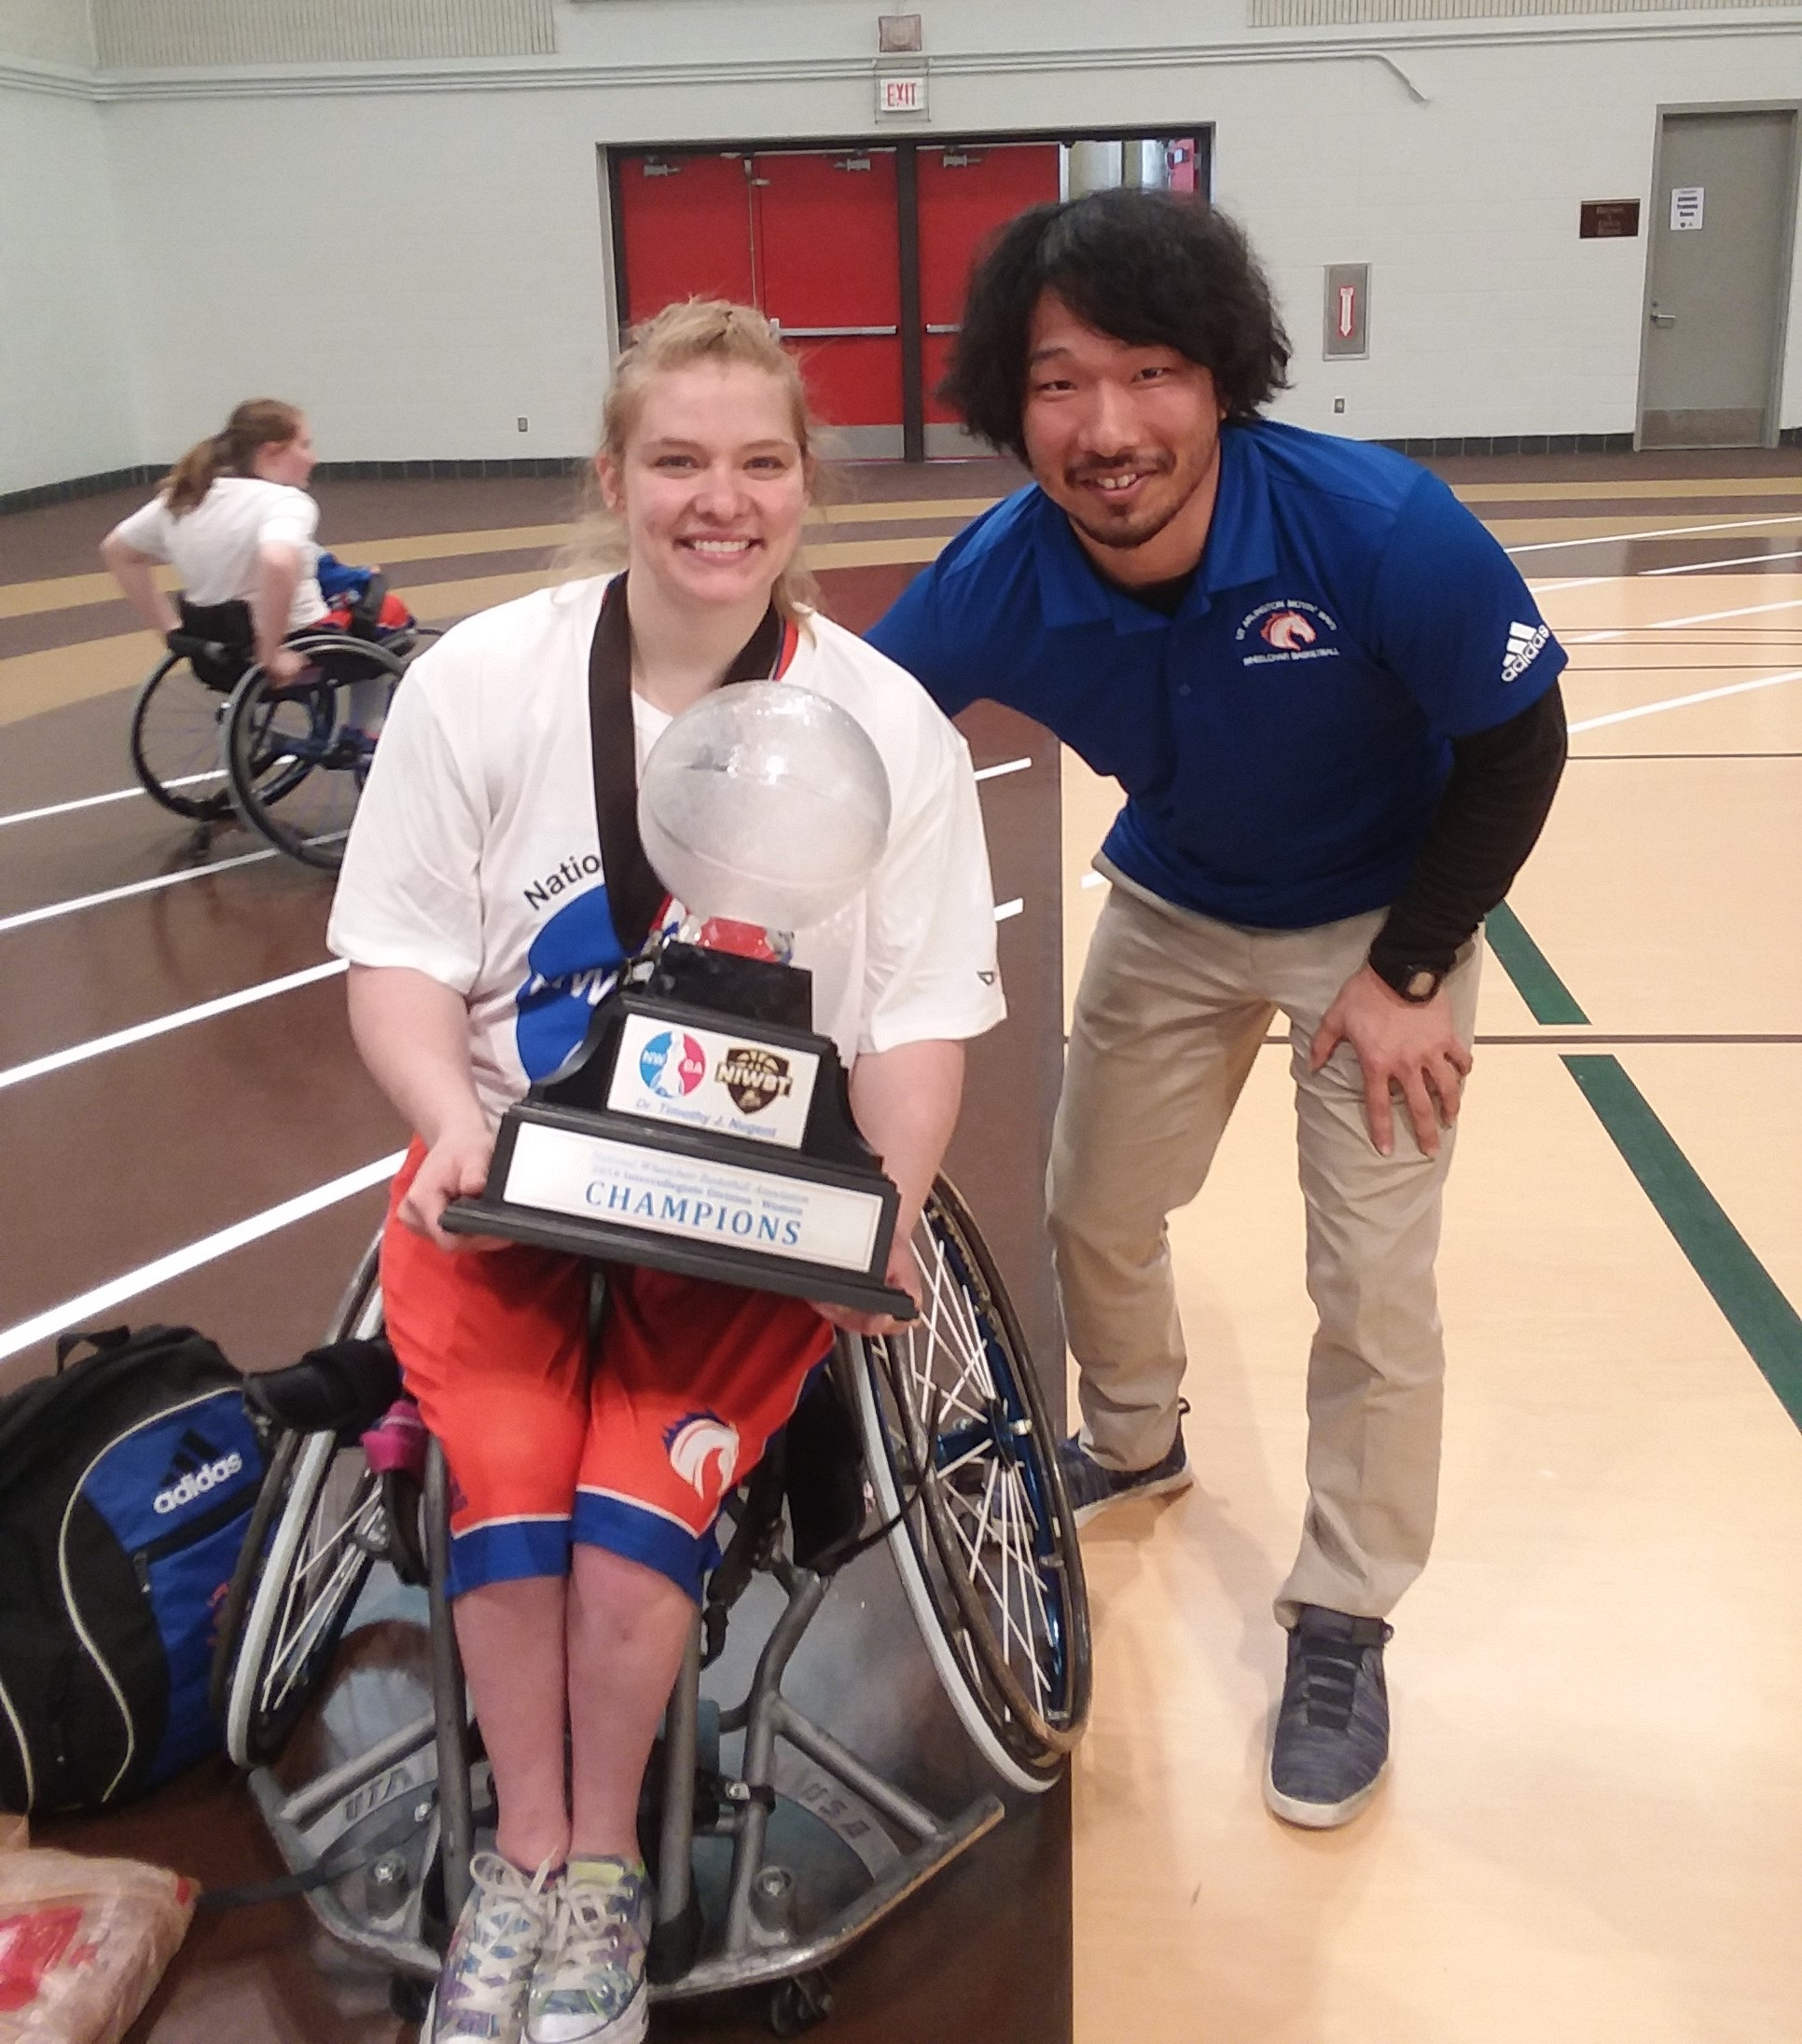 Rose Hollermann led the UTA Lady Movin' Mavs to victory at the 2018 National Wheelchair Basketball Tournament and was named most valuable player. Saito had the opportunity to train almost every day with Hollermann, who is also a member of the U.S. Women's National Wheelchair Basketball Team.